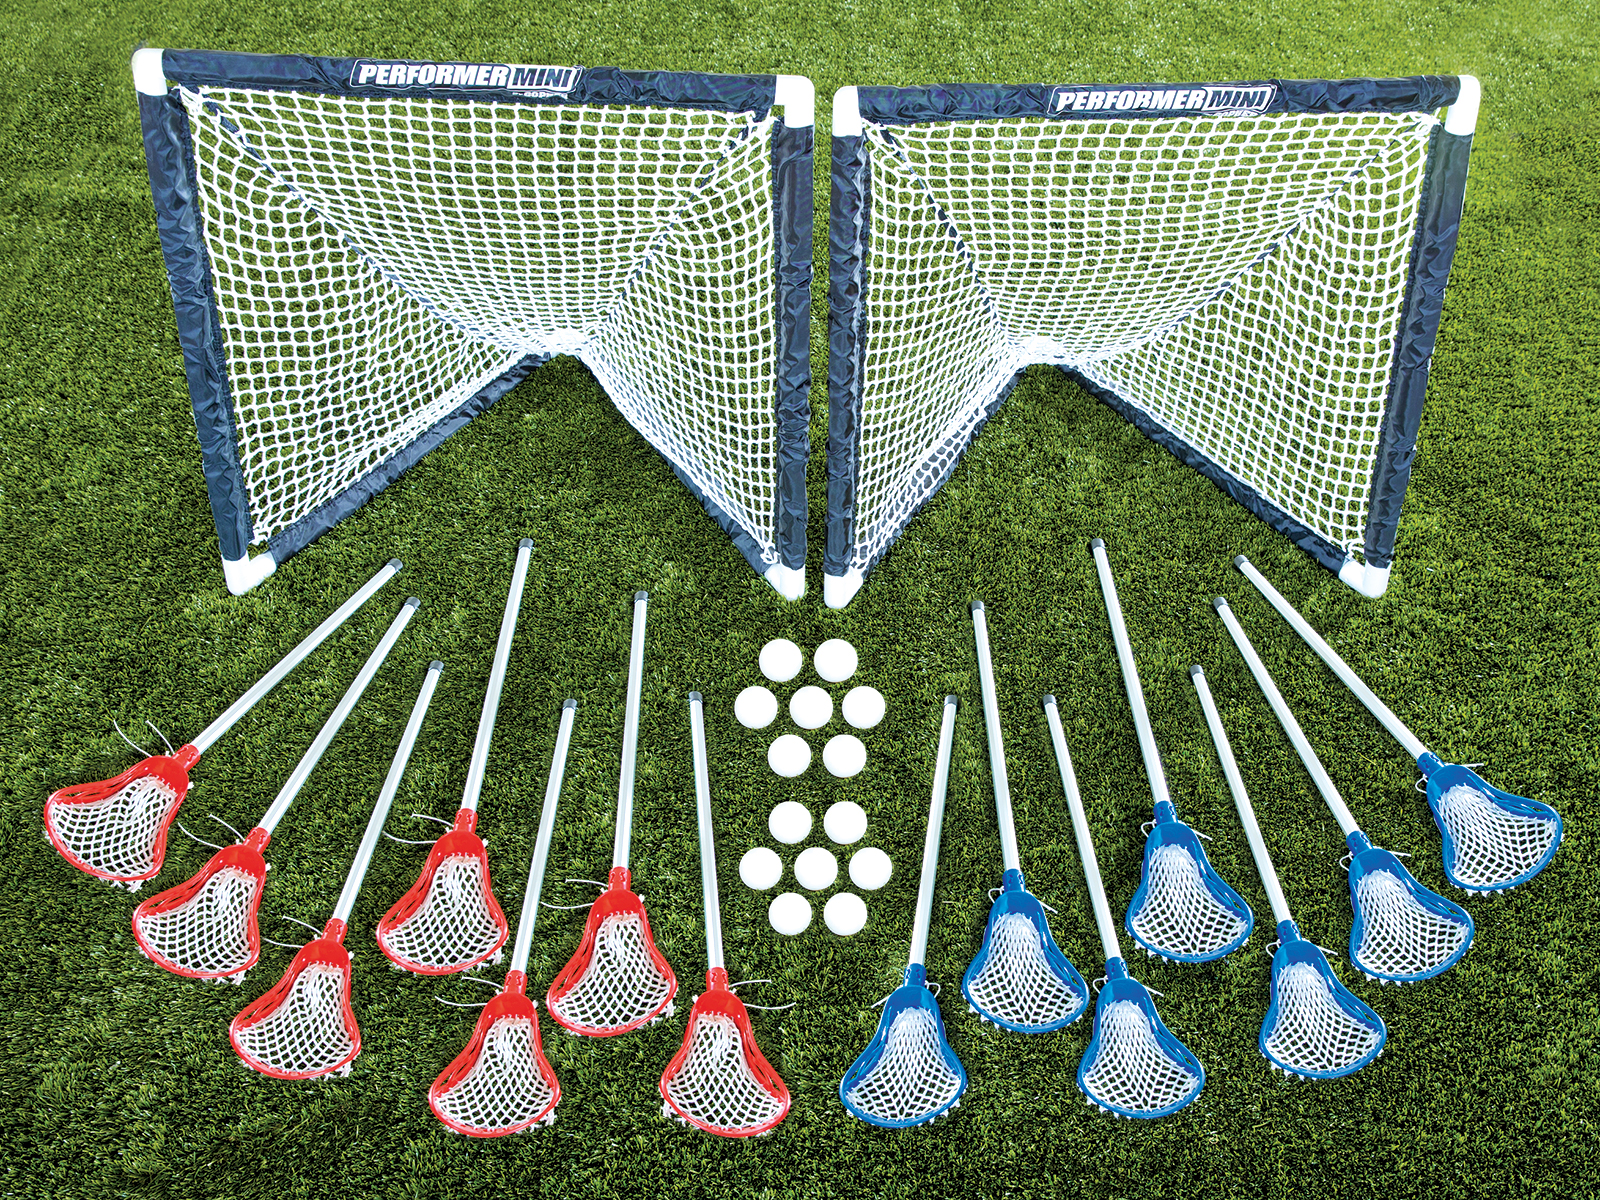 14-player set of lacrosse sticks